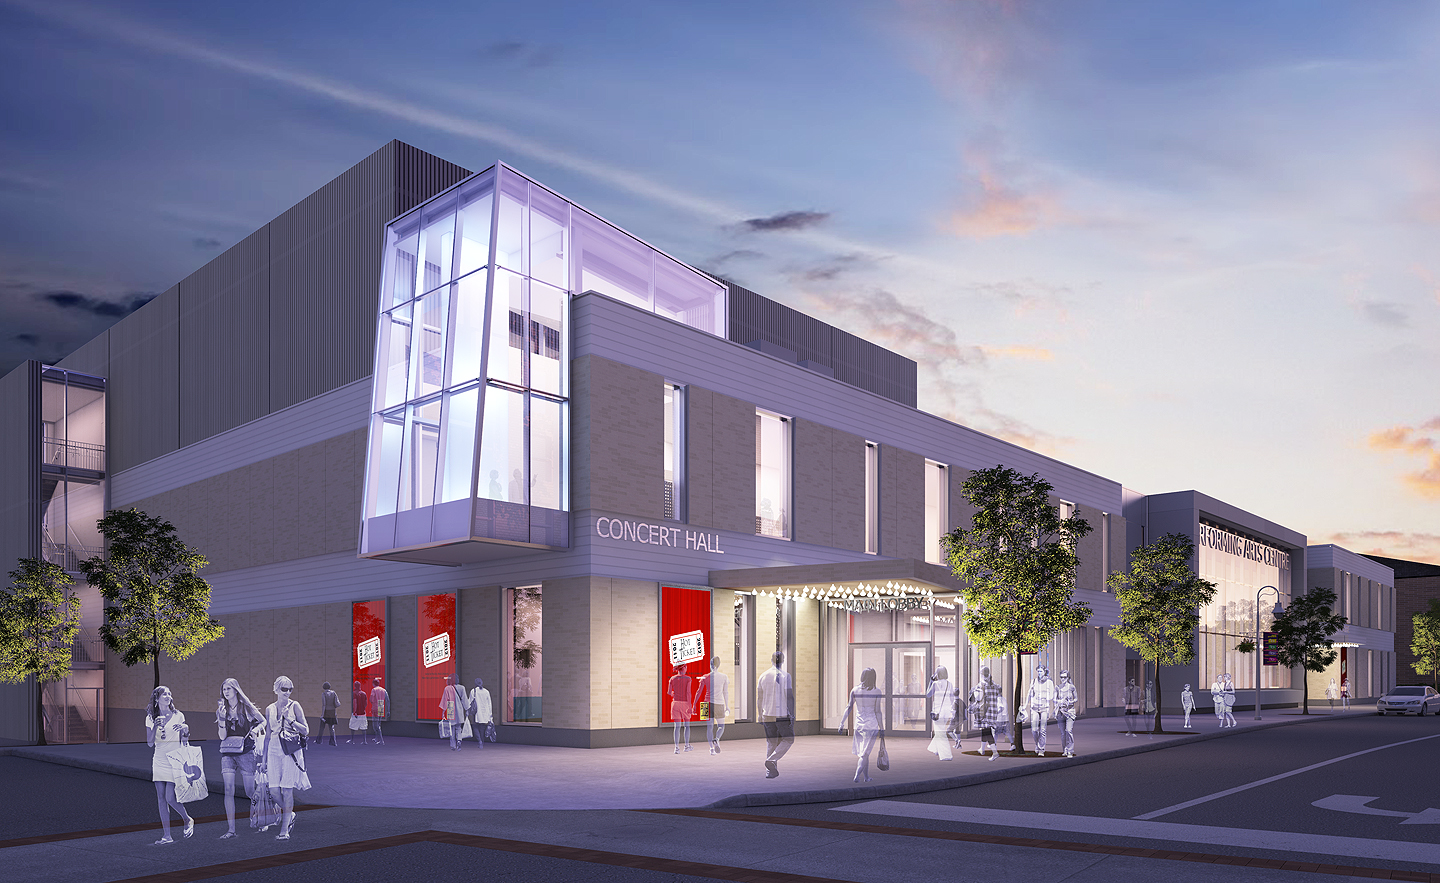 A rendering showing the newly opened FirstOntario Performing Arts Centre in downtown St. Catherines, Ontario.